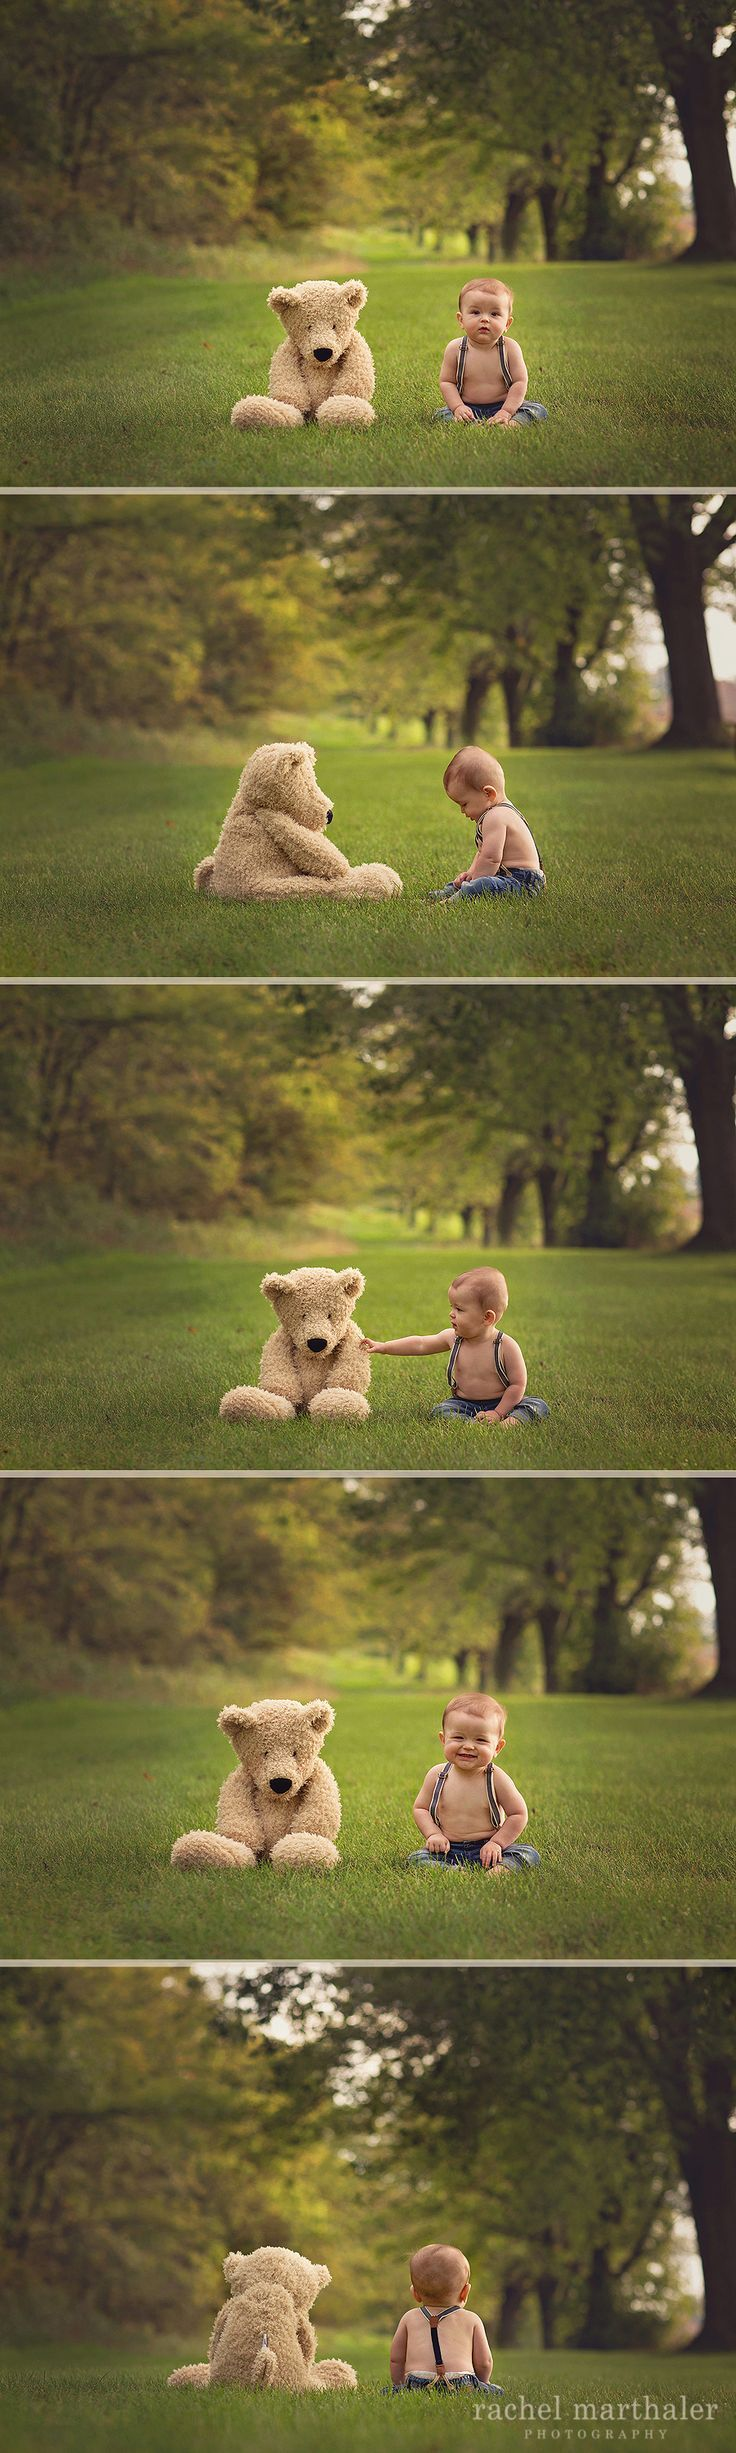 Baby Teddy Bear Photo, 8 month photo baby boy, Teddy bear, Twin Cities Photographer, Rachel Marthaler Photography                                                                                                                                                                                 Más